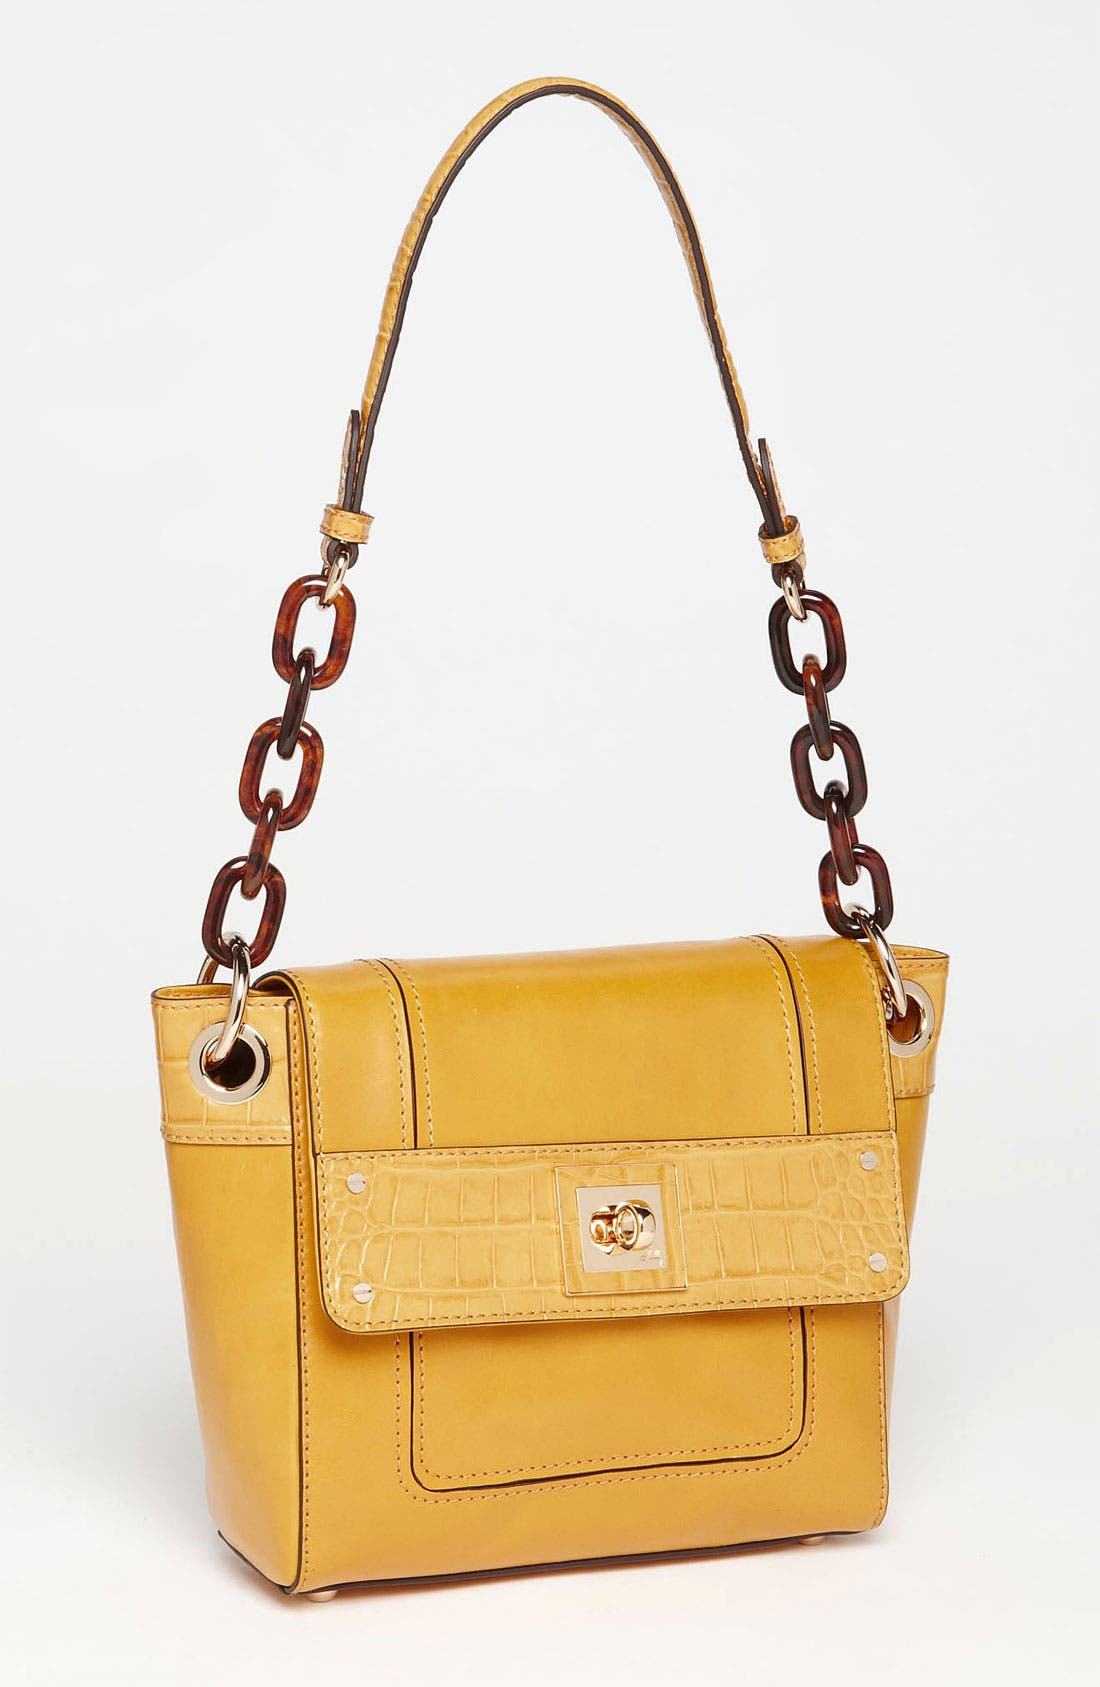 Main Image - Milly 'Amelia' Shoulder Bag with Croc Embossed Trim